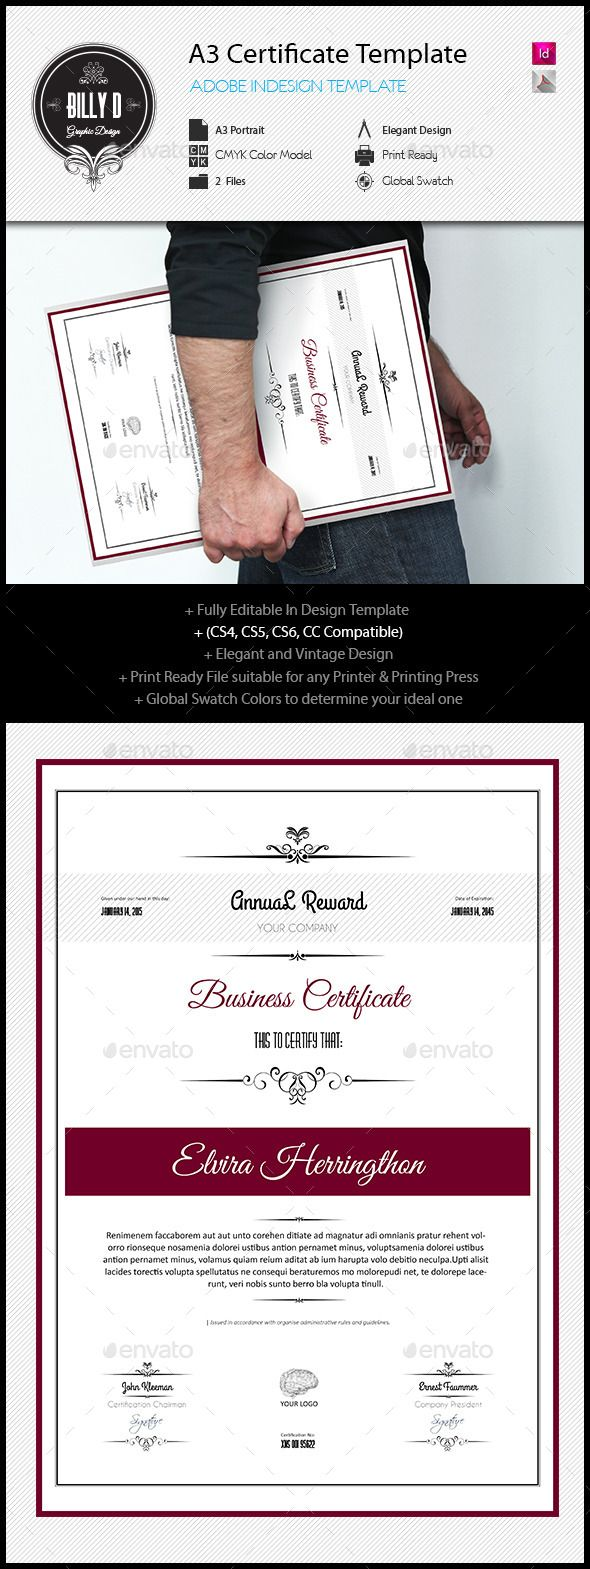 A3 certificate template certificate template and certificate design adobe yelopaper Image collections